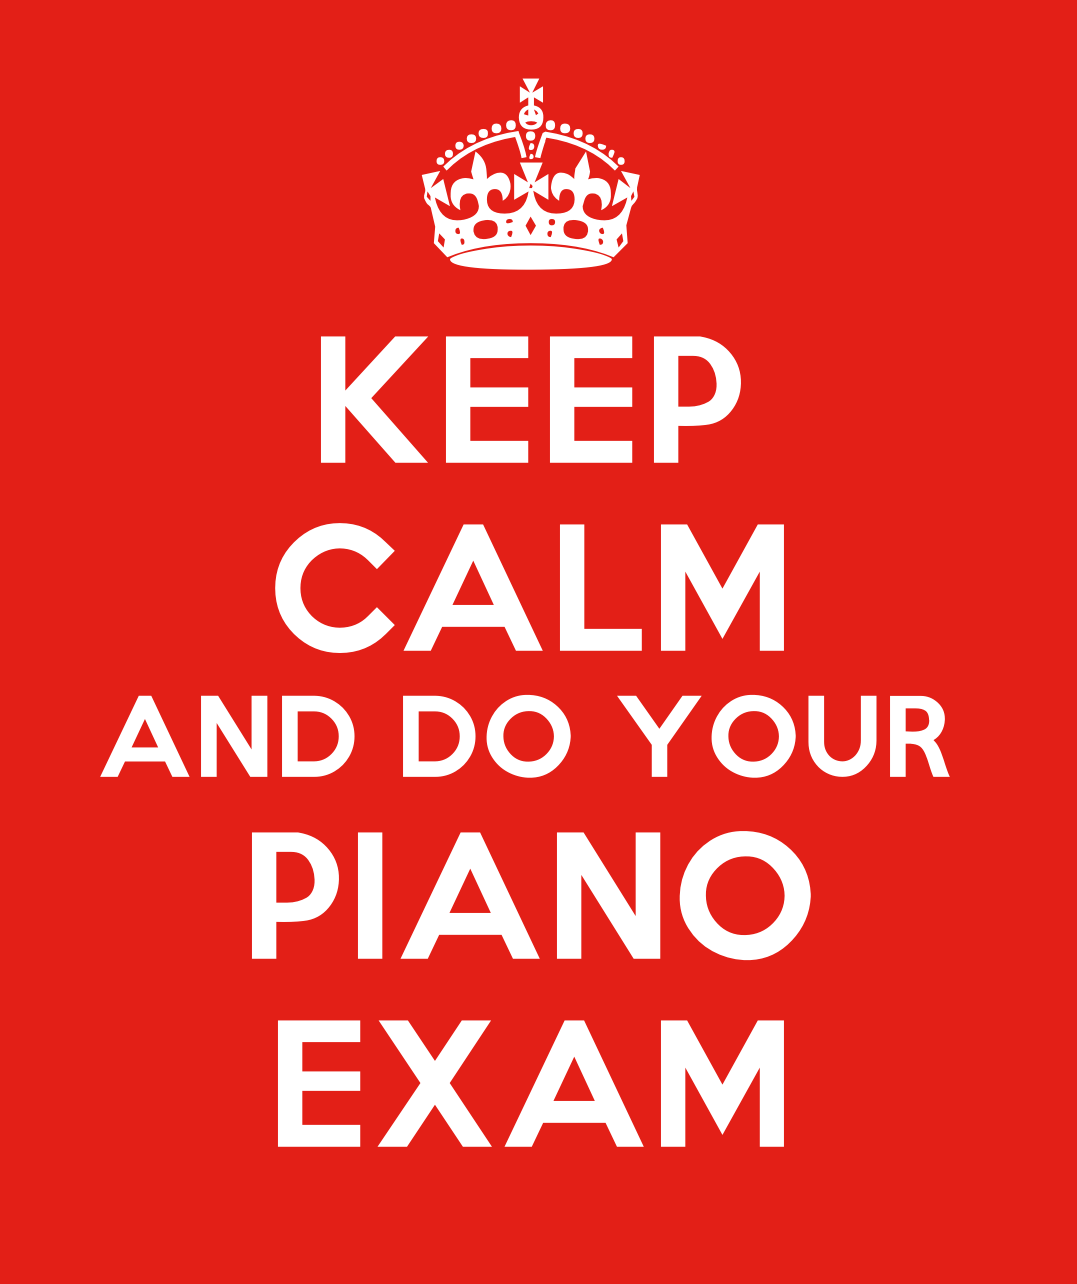 Jelia's Music Playground: IS PIANO EXAM REALLY NECESSARY?